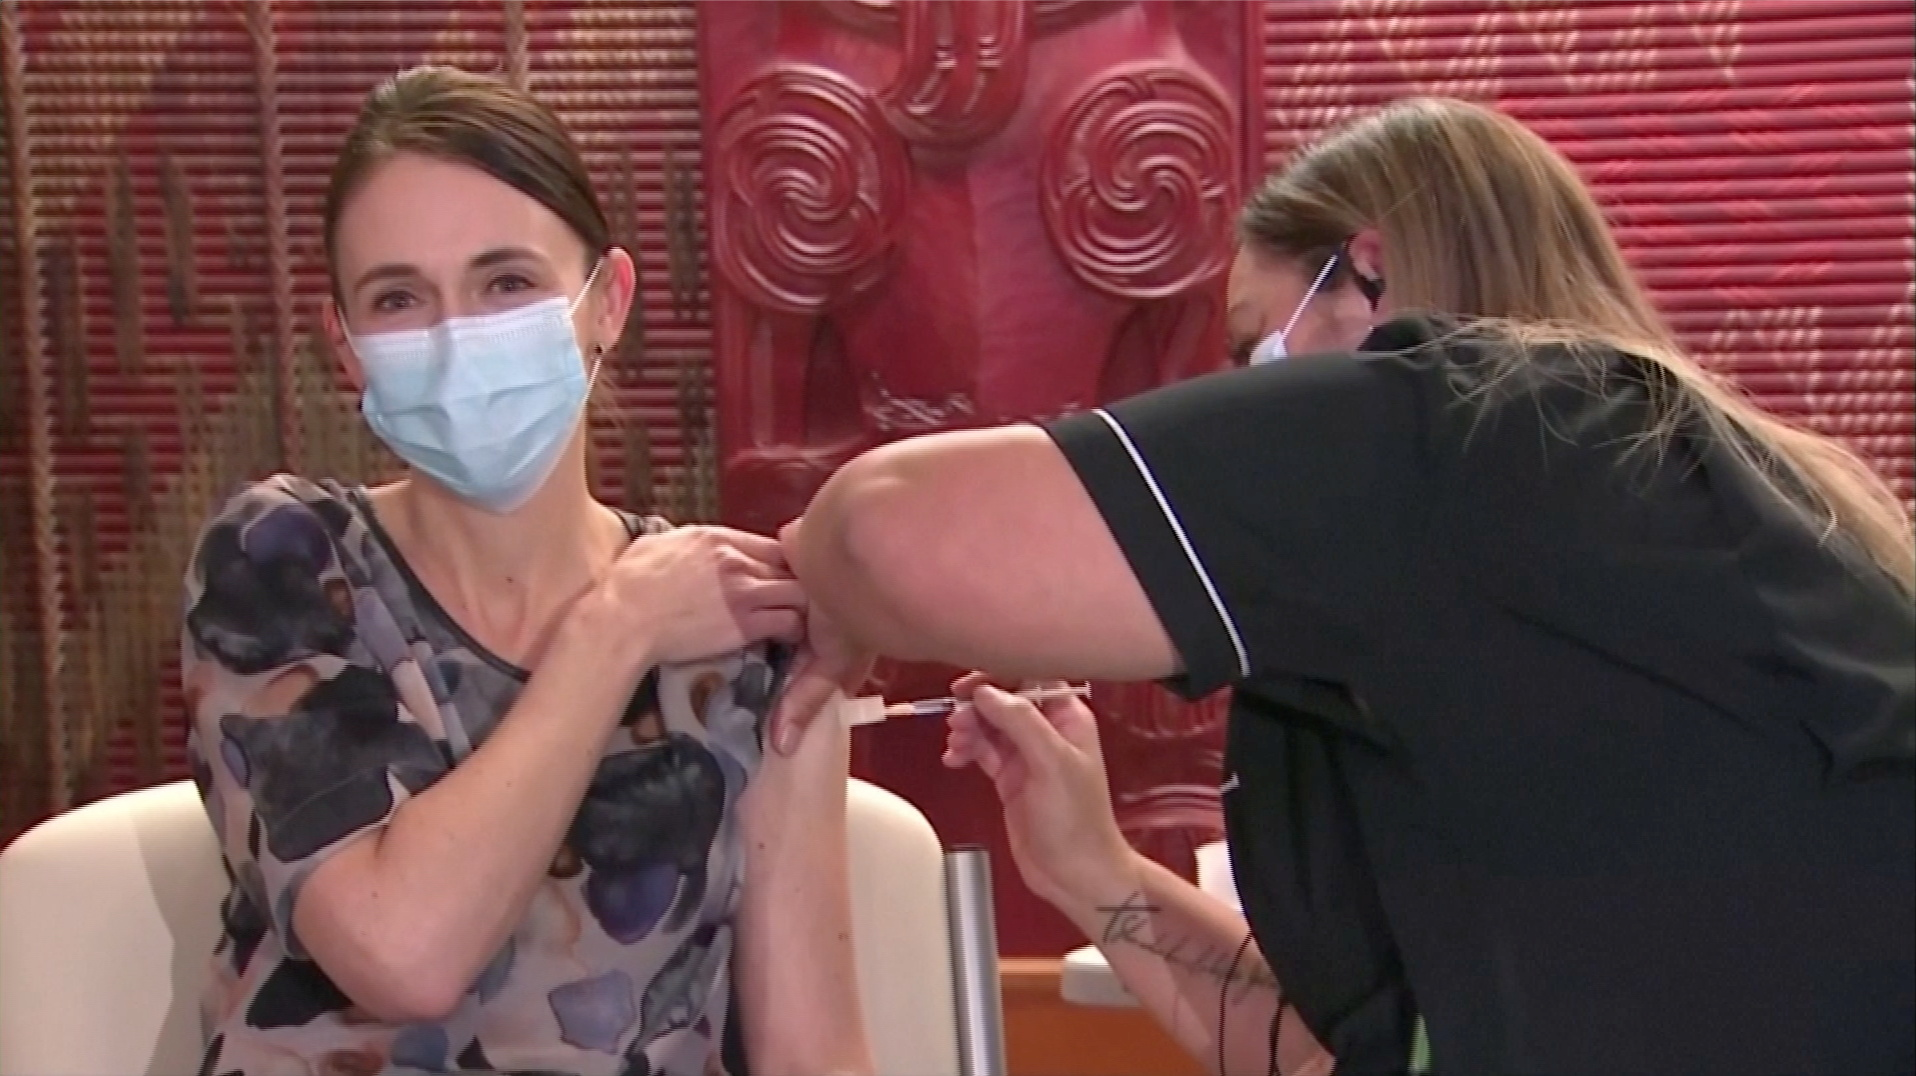 New Zealand's Prime Minister Jacinda Ardern receives her first dose of the Pfizer coronavirus disease (COVID-19) vaccine at a vaccination centre in Auckland, New Zealand, June 18, 2021, in this still image taken from video. TVNZ / via REUTERS TV